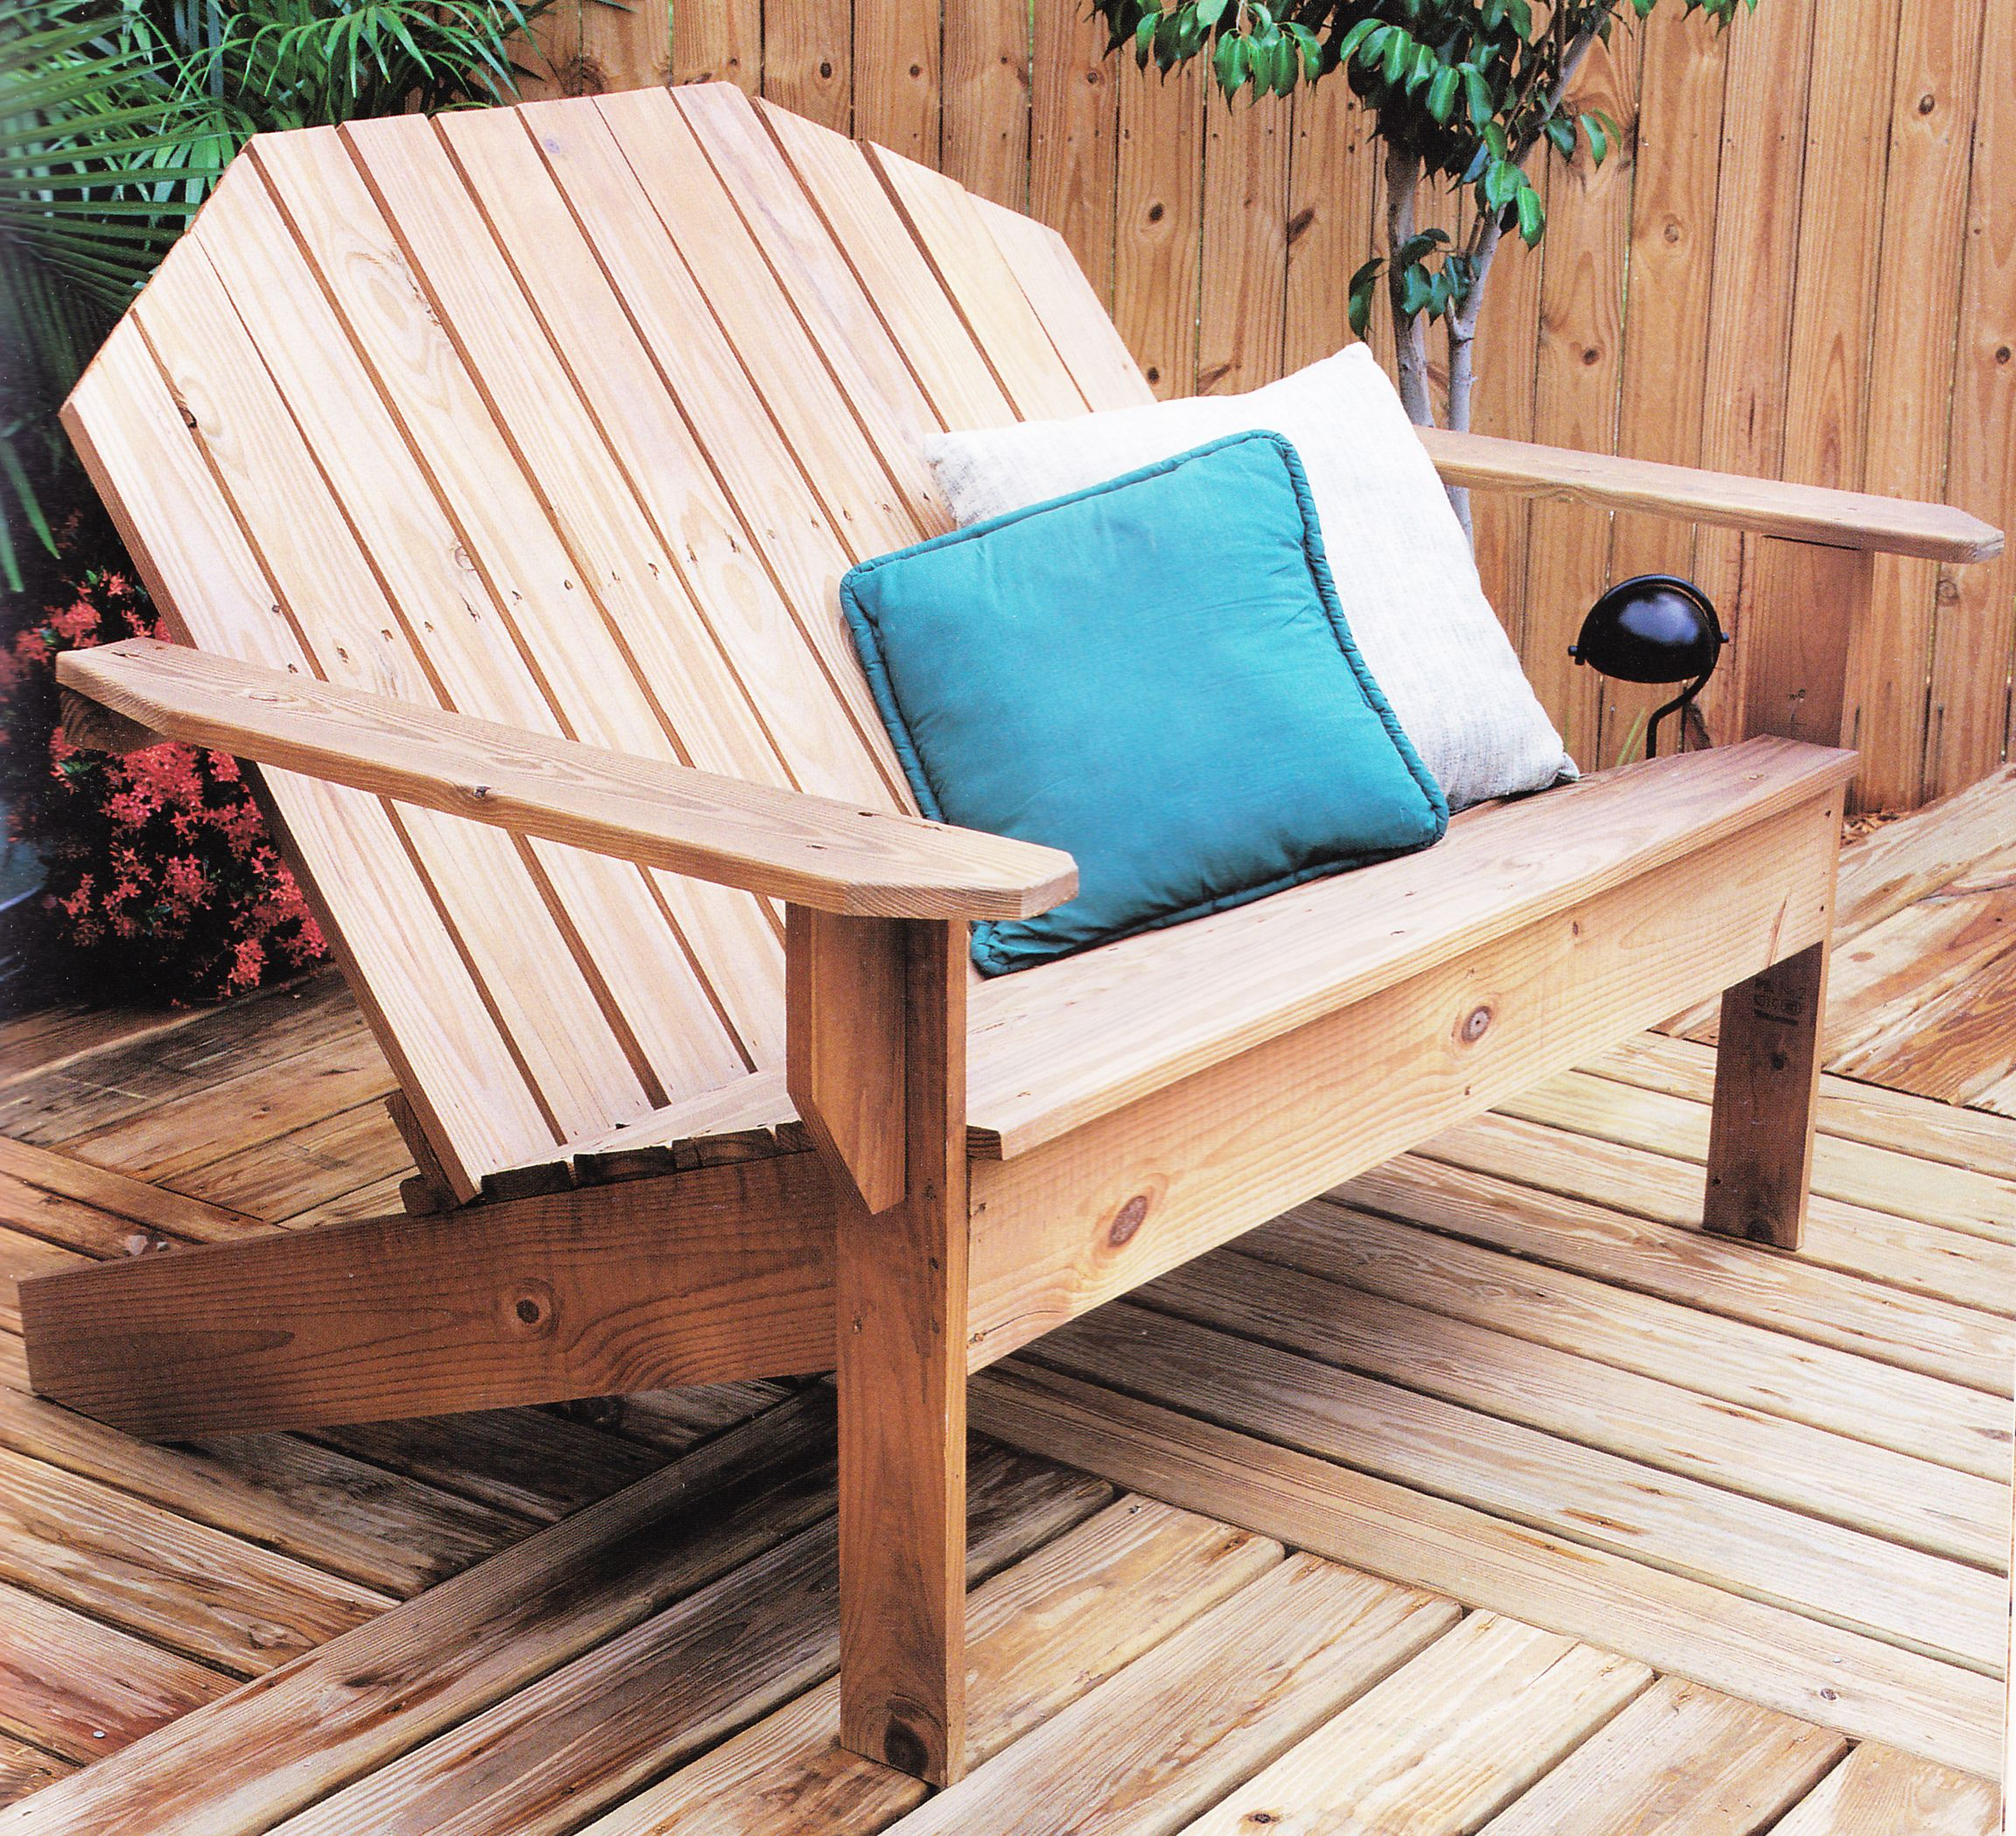 Muskoka Sofa Design From 2X4 Projects For Outdoor Living 400 x 300